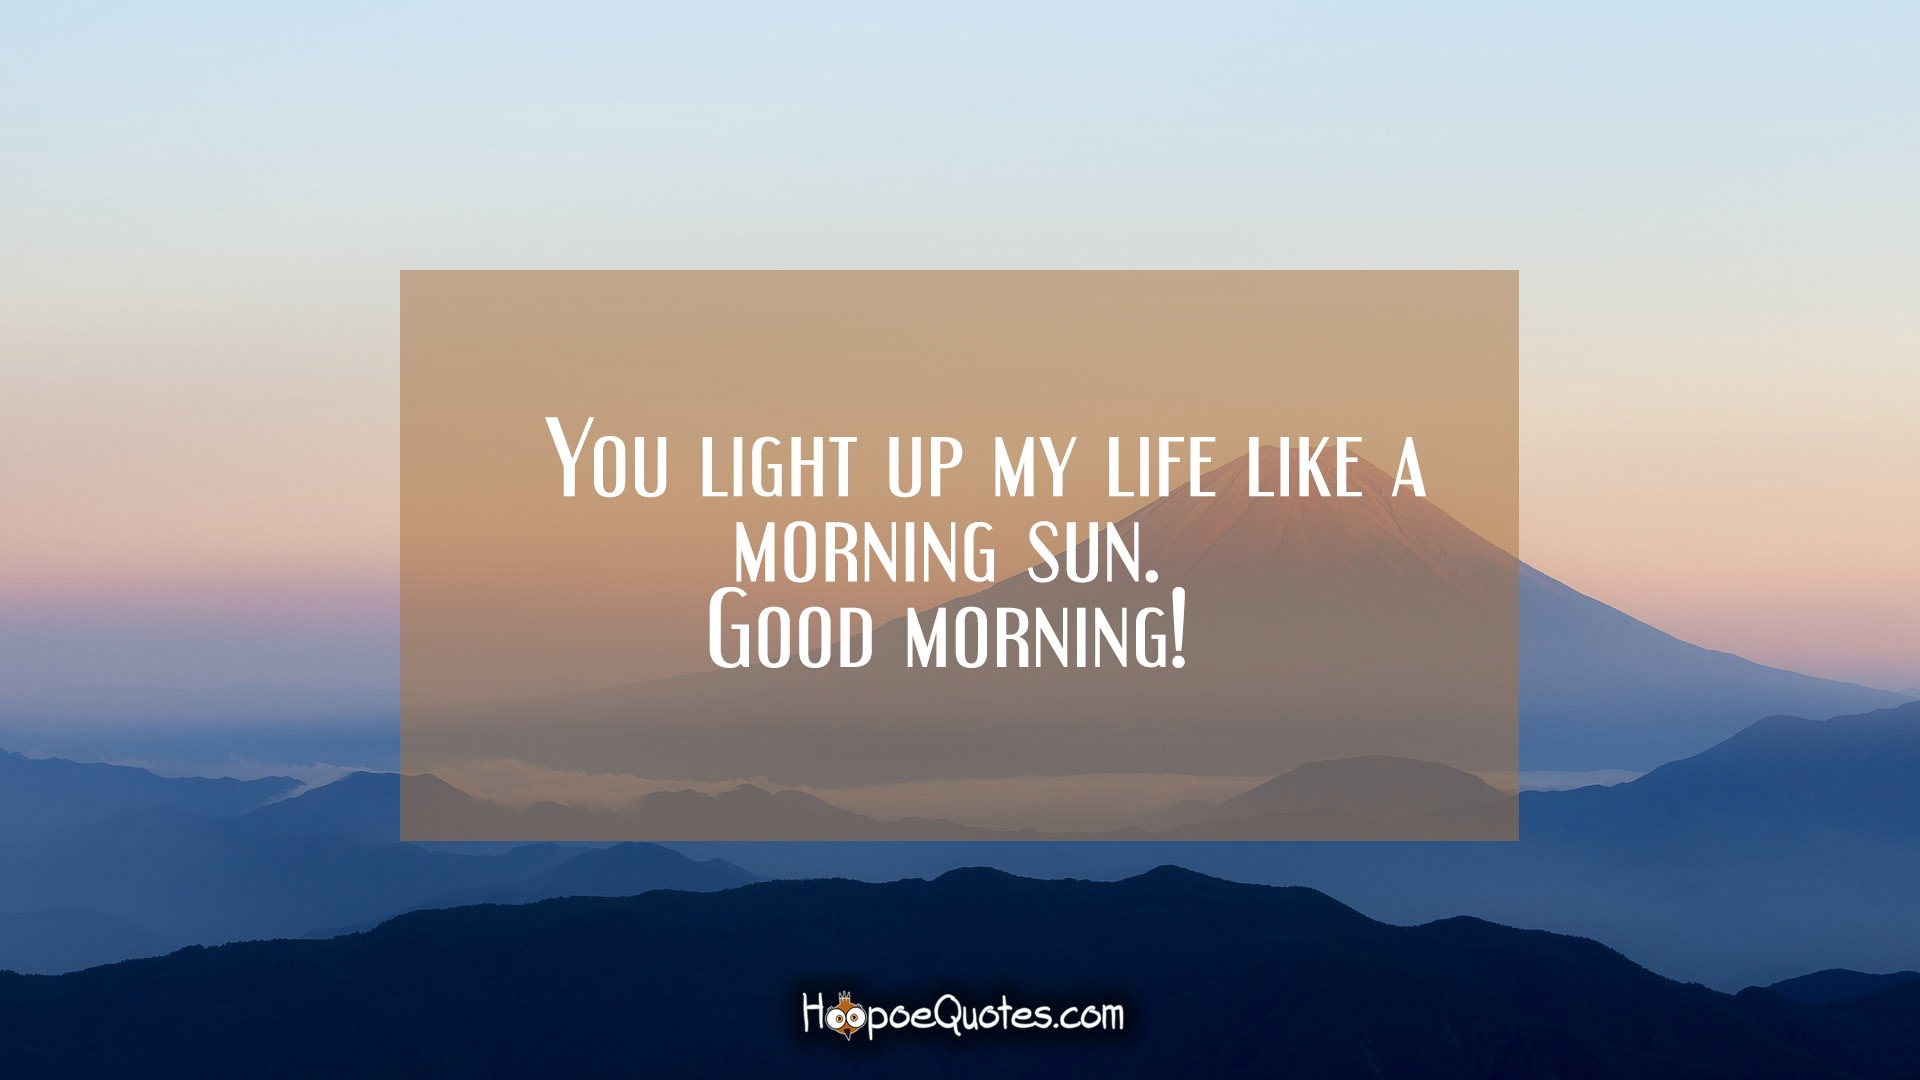 You light up my life like a morning sun good morning hoopoequotes 0 kristyandbryce Gallery